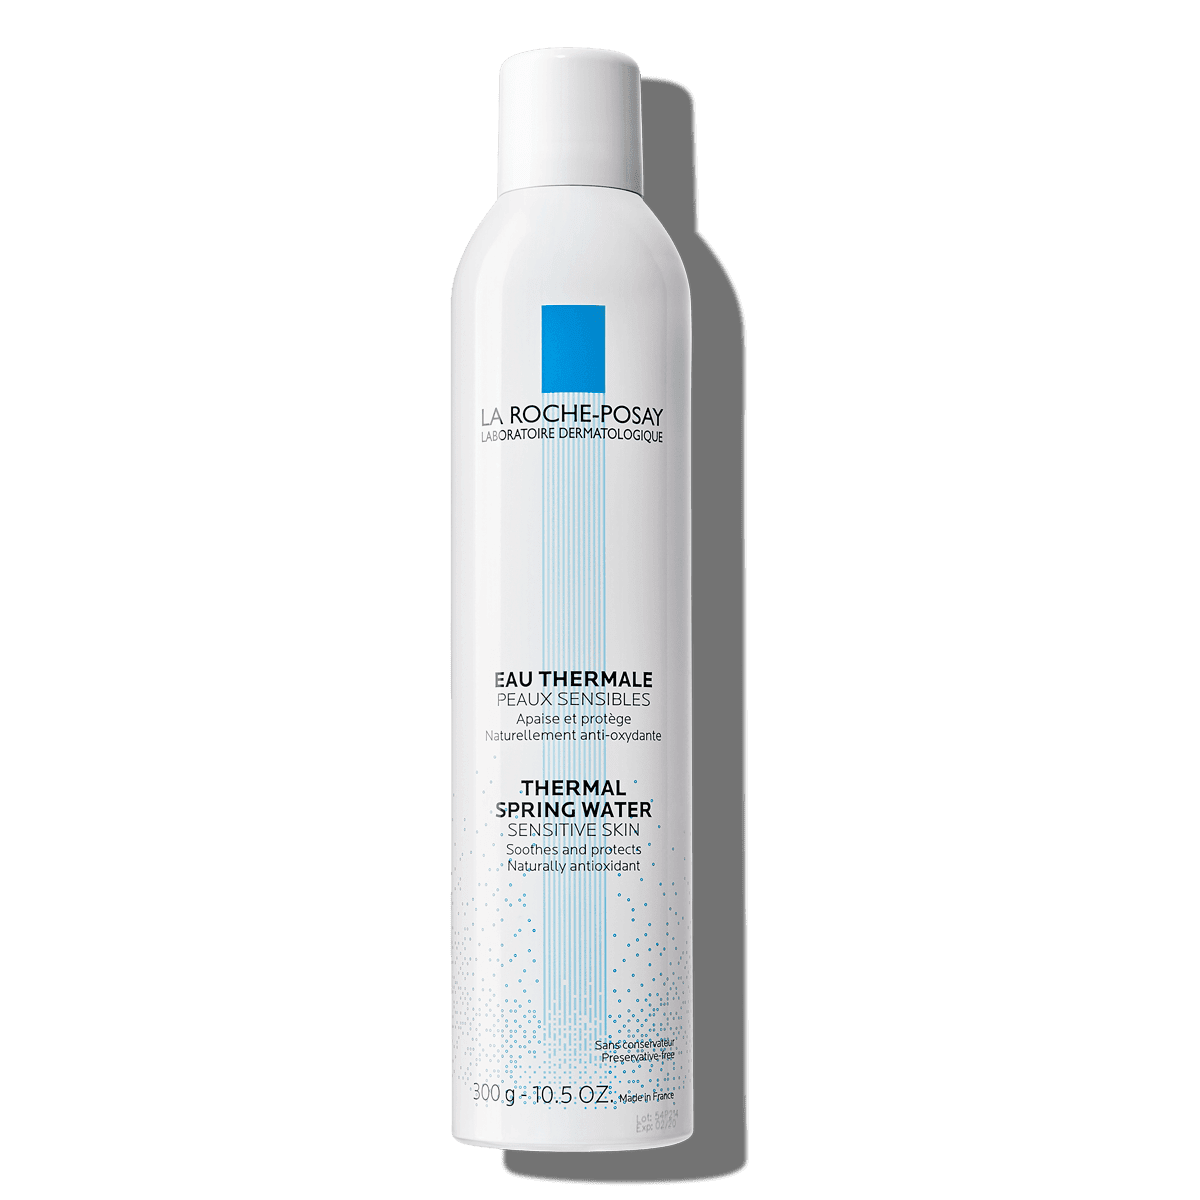 La Roche Posay ProductPage Thermal Spring Water 300ml 3433422404403 Fr